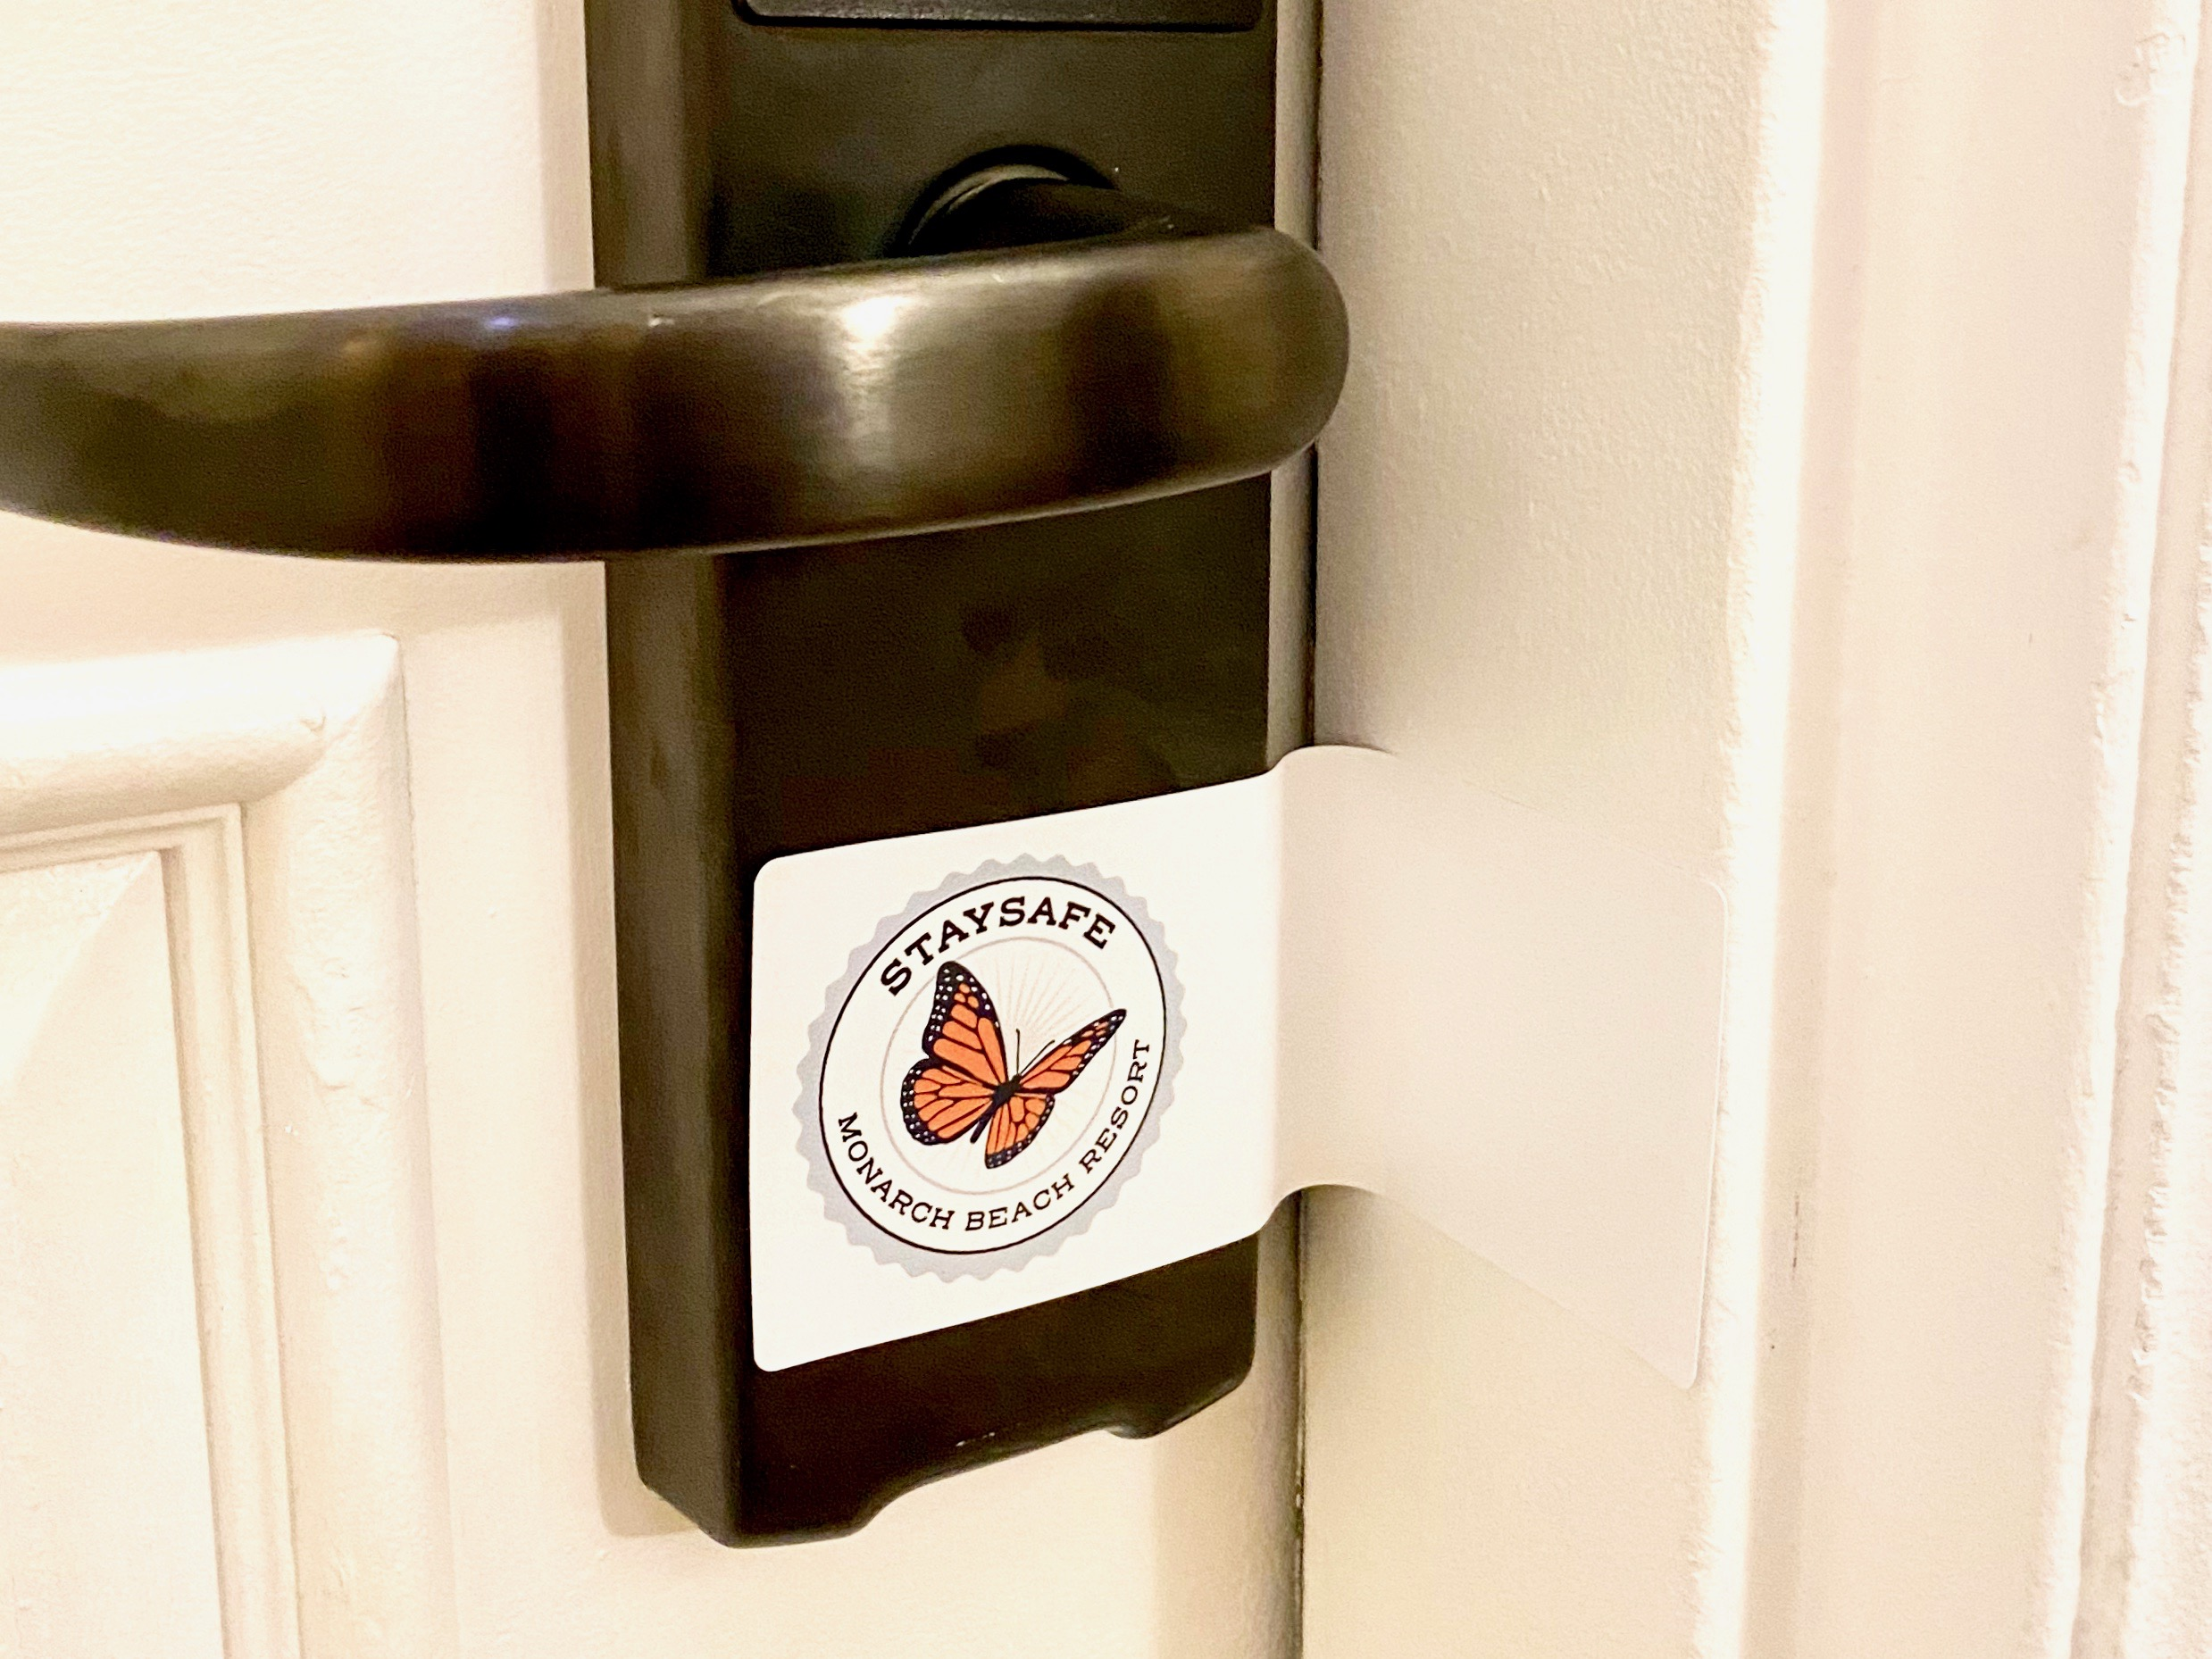 The Stay Safe Program at the Monarch Beach Resort in Dana Point, CA includes safety seals on all guest rooms